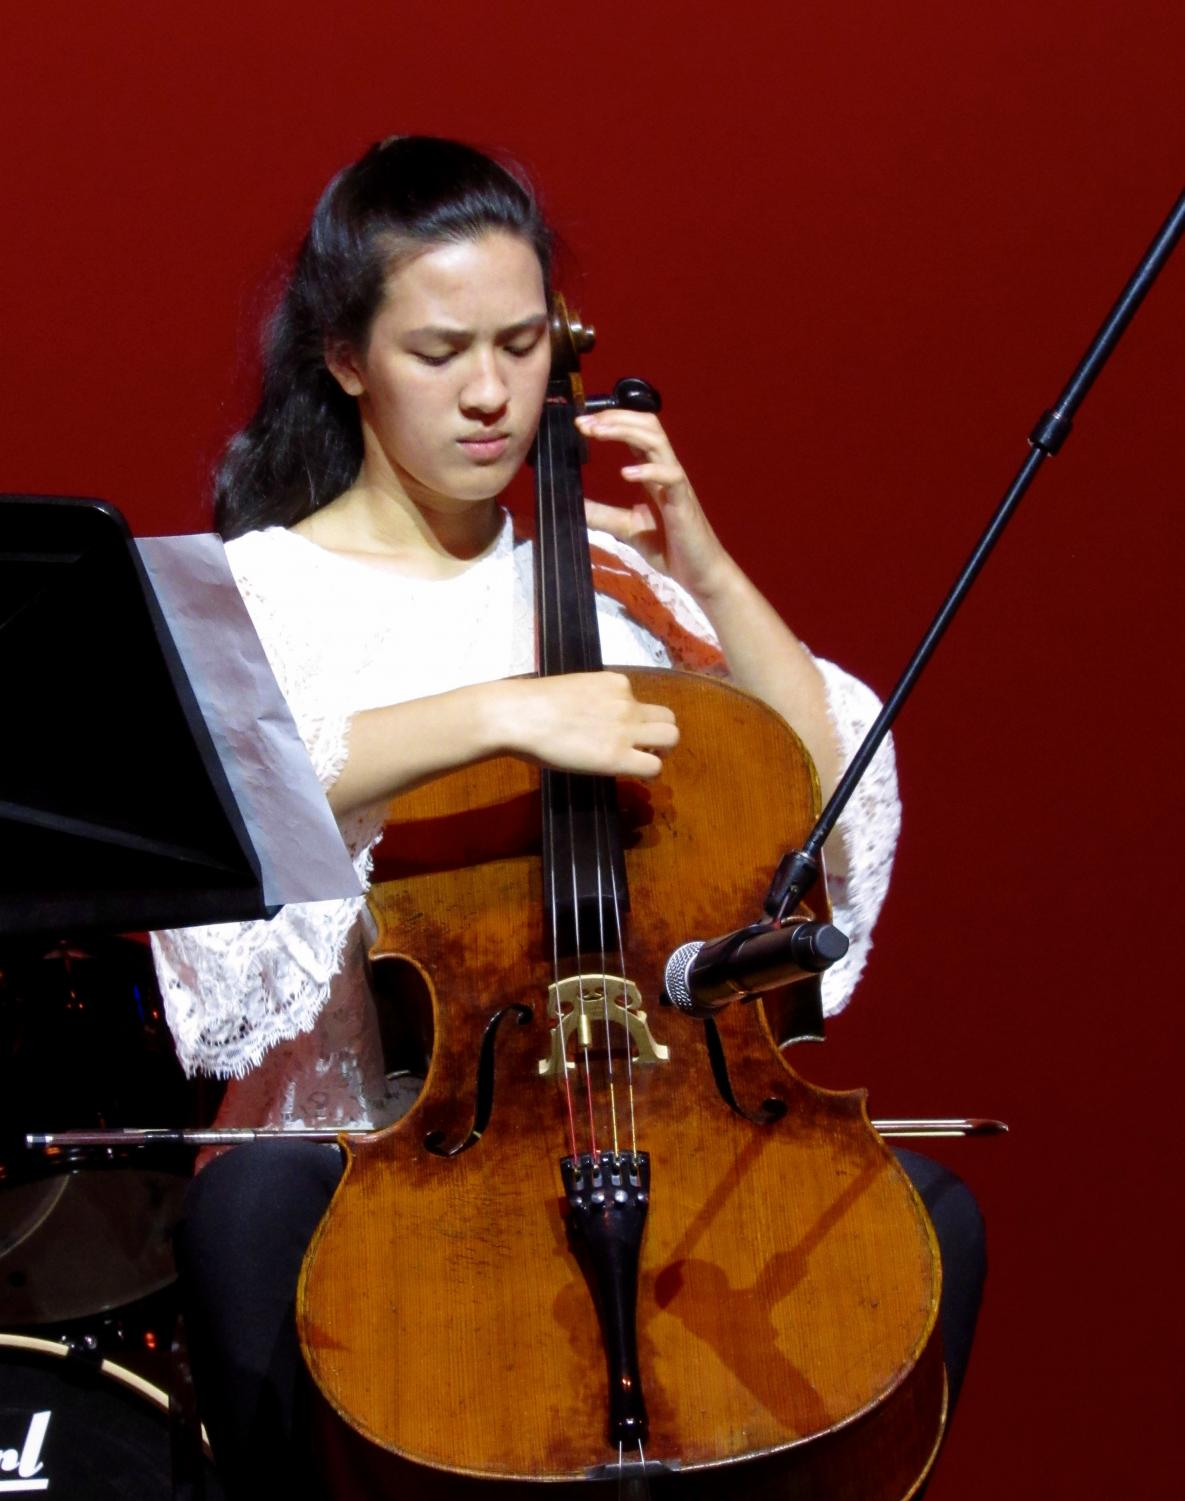 Lydia+Pless+shows+off+her+skills+on+the+cello+by+playing+%22Julie-O%22+by+Mark+Summers